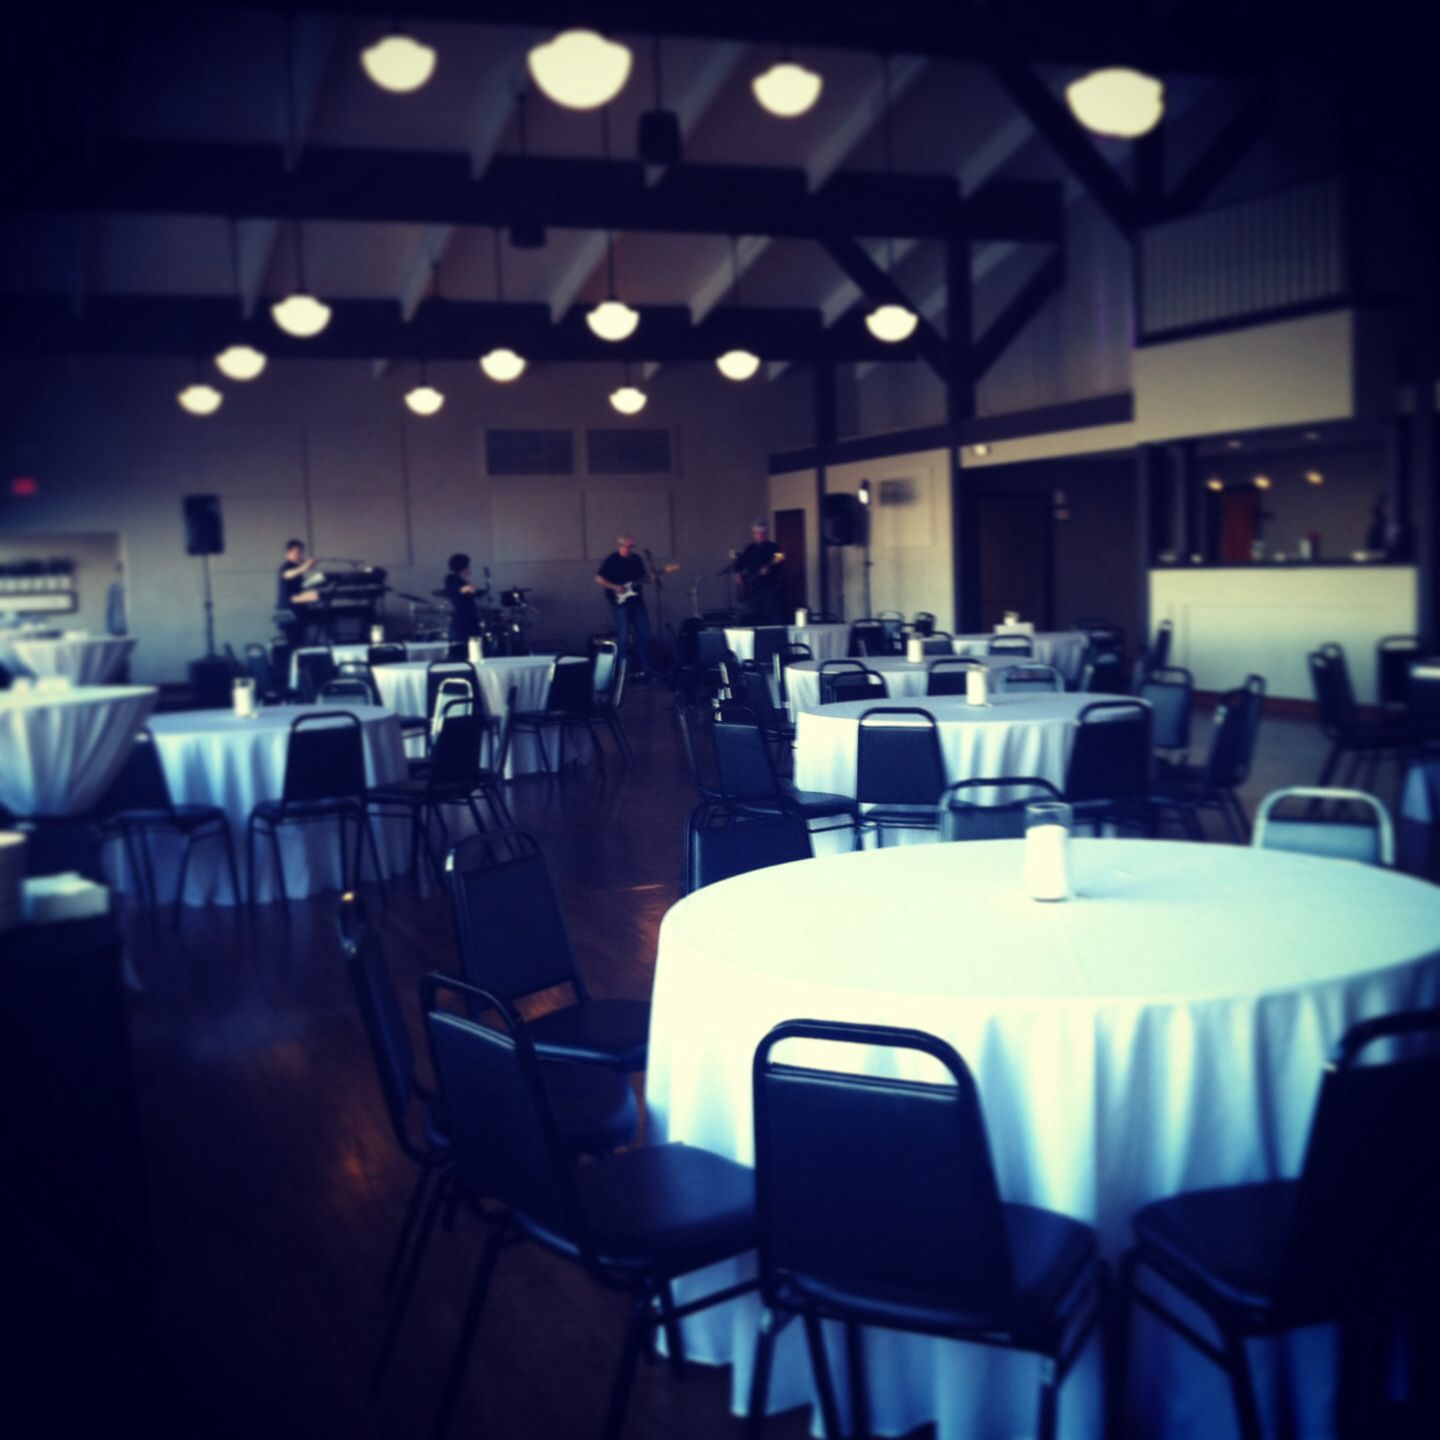 Black and white birthday party decor by www.enchantingspecialevents.com